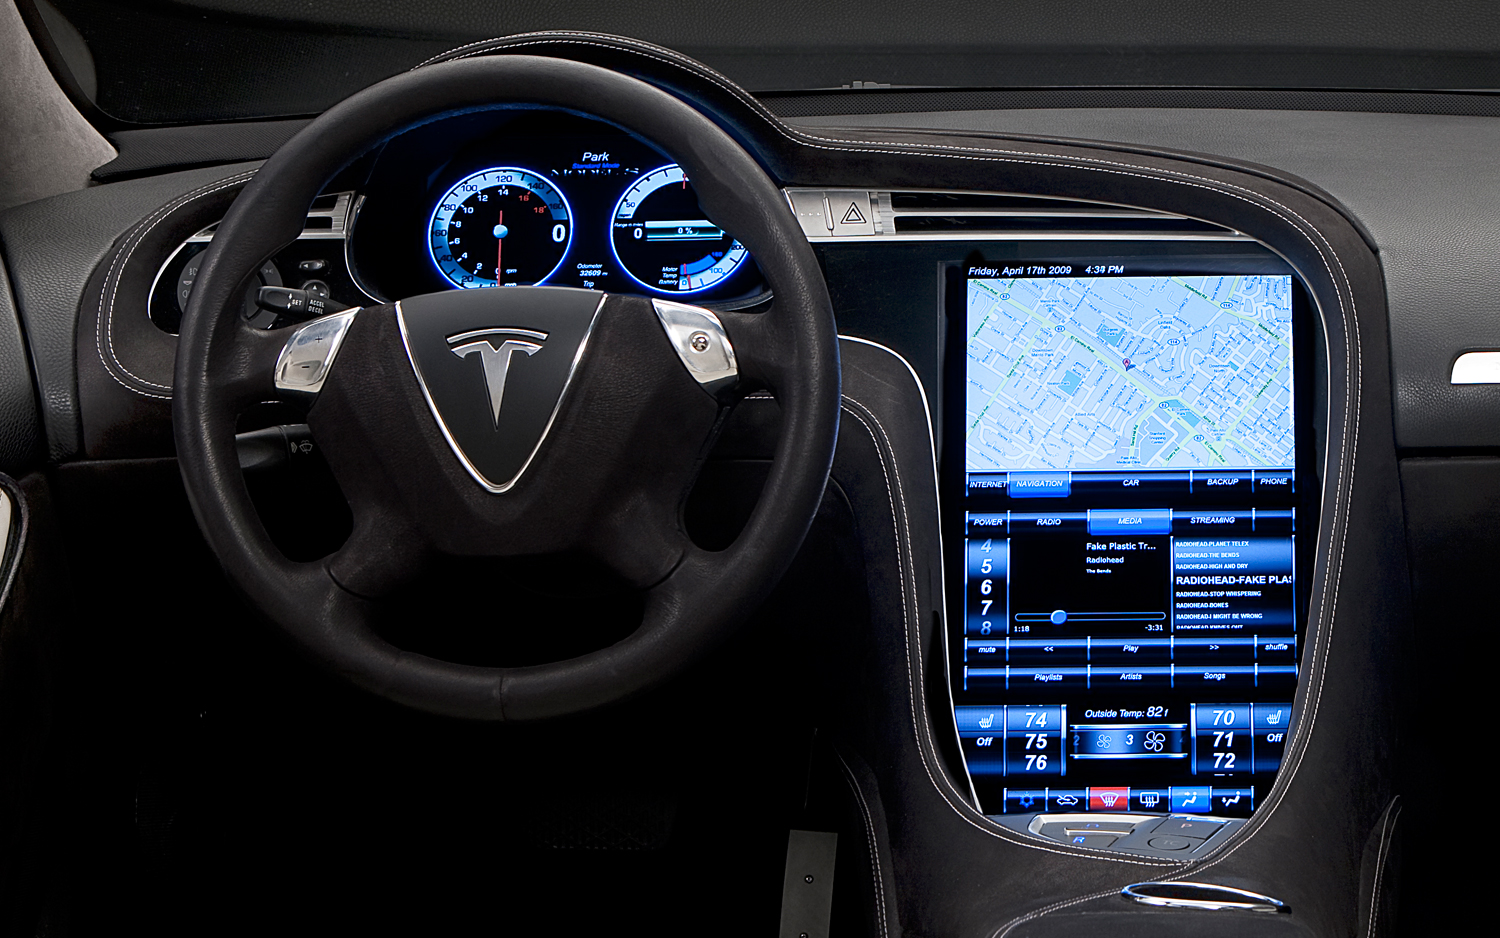 2012-tesla-model-s-dash-view